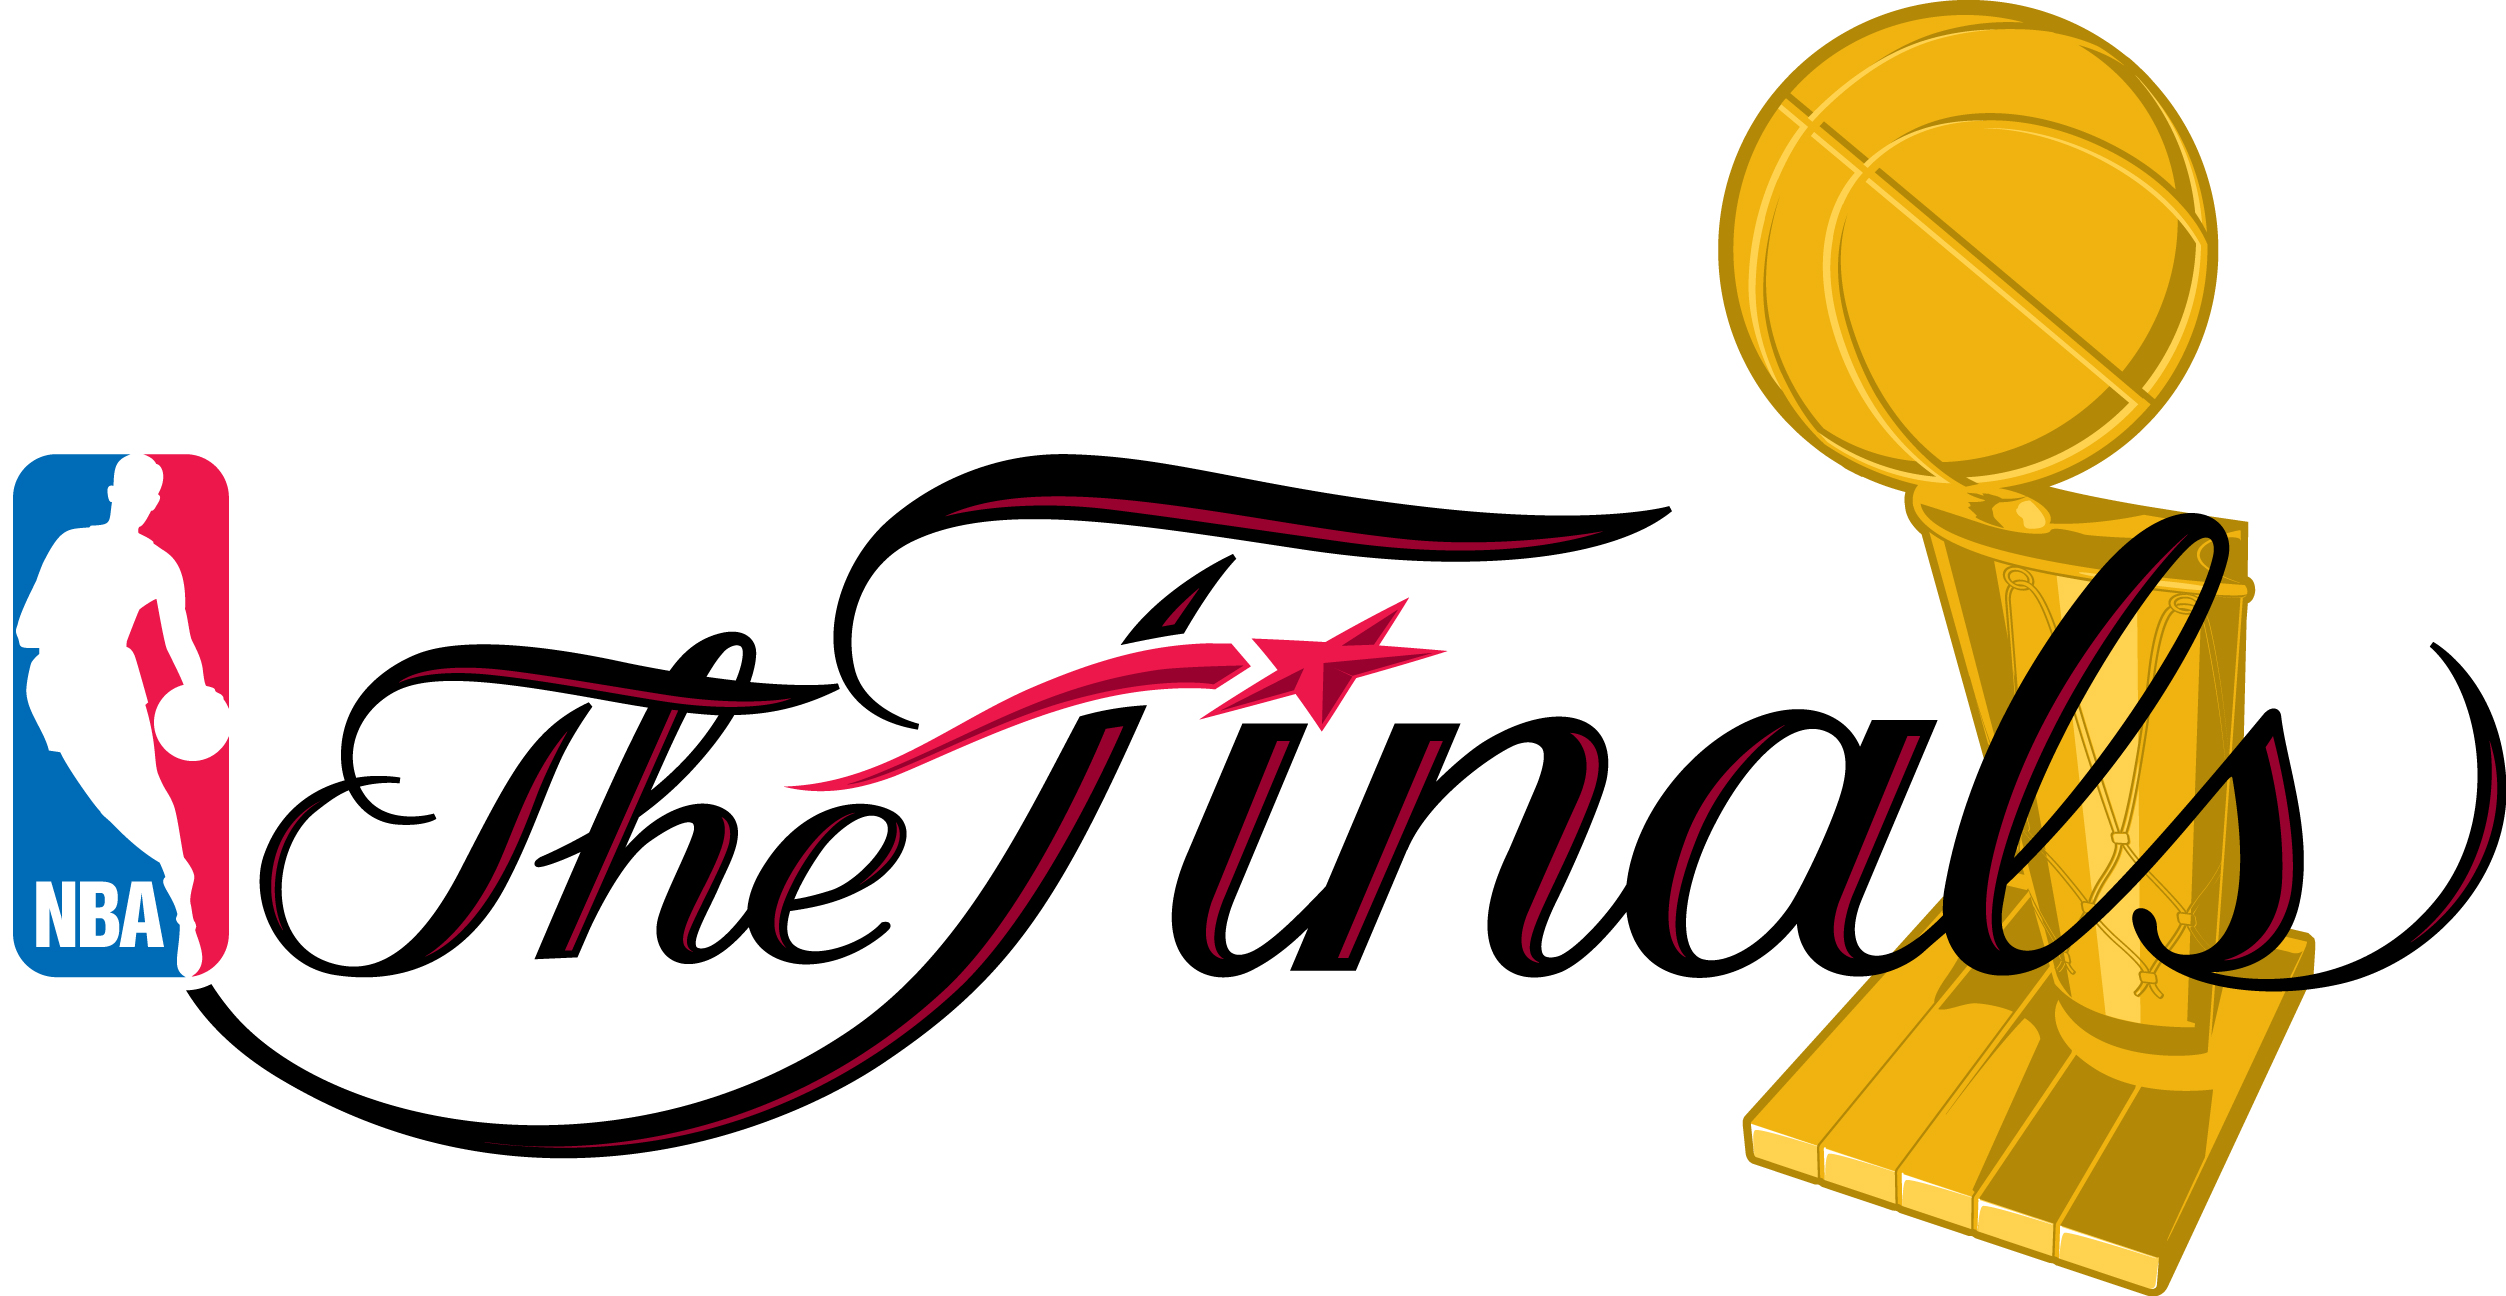 Nba playoffs clipart clipart images gallery for free.